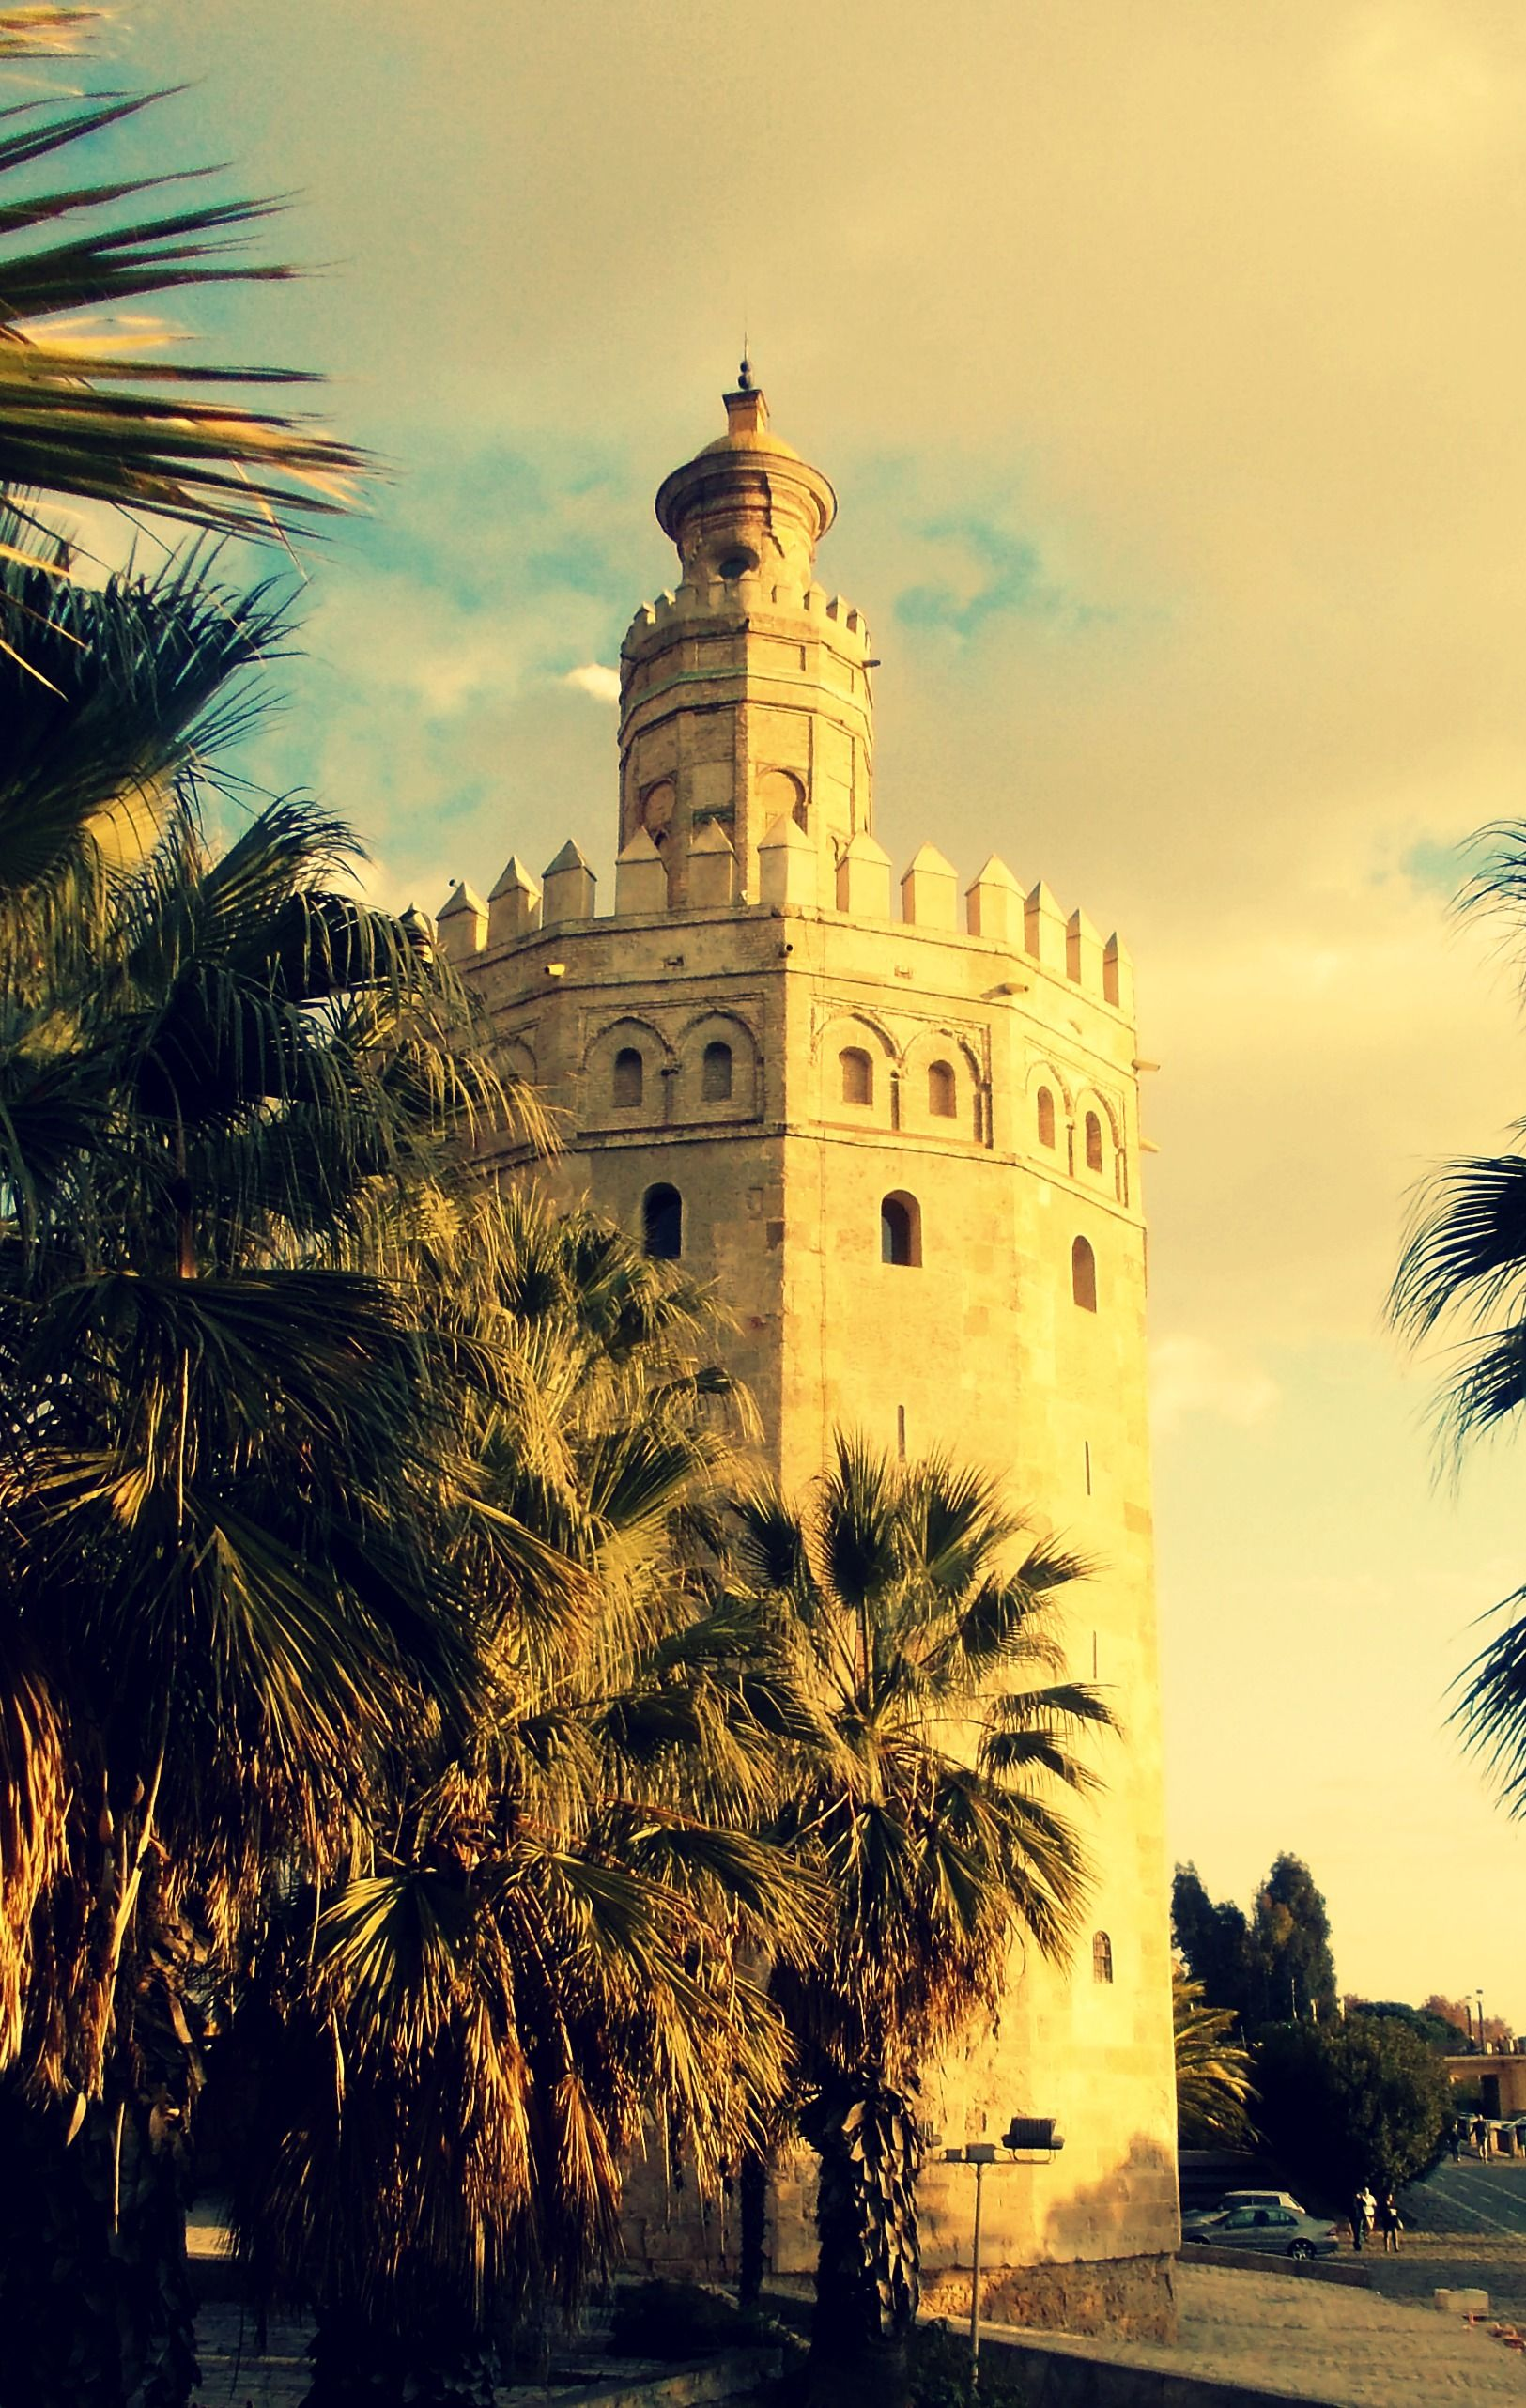 Torre del Oro, Sevilla, Spain, picture by Fiorenza [I thought this looked familiar...]